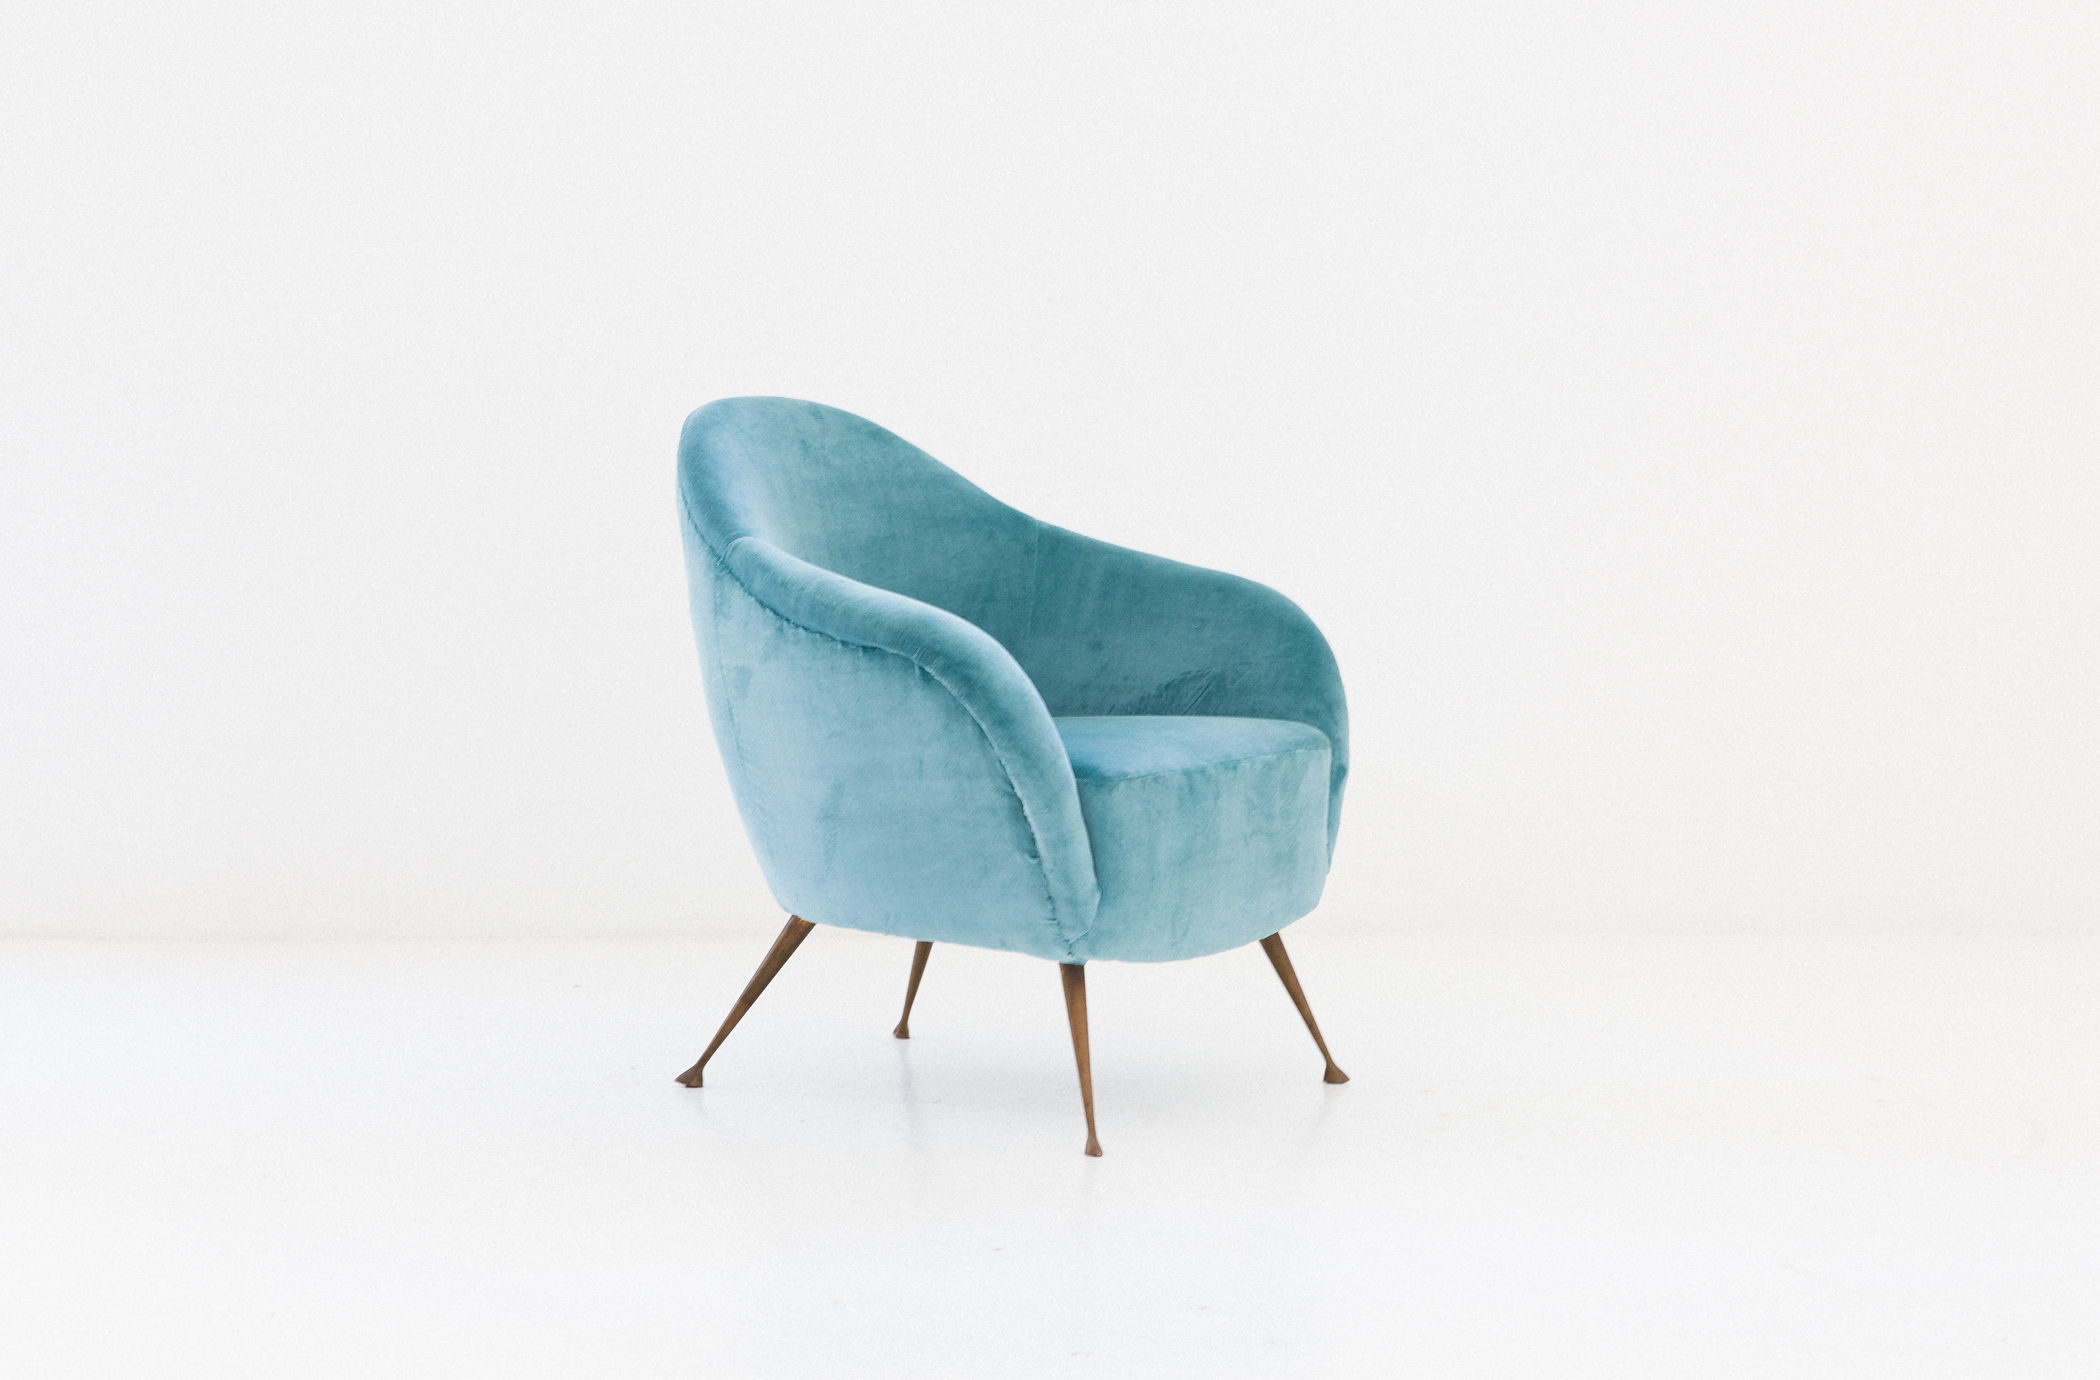 turquoise lounge chair chairs for sale velvet and brass legs italy 1950 design prev